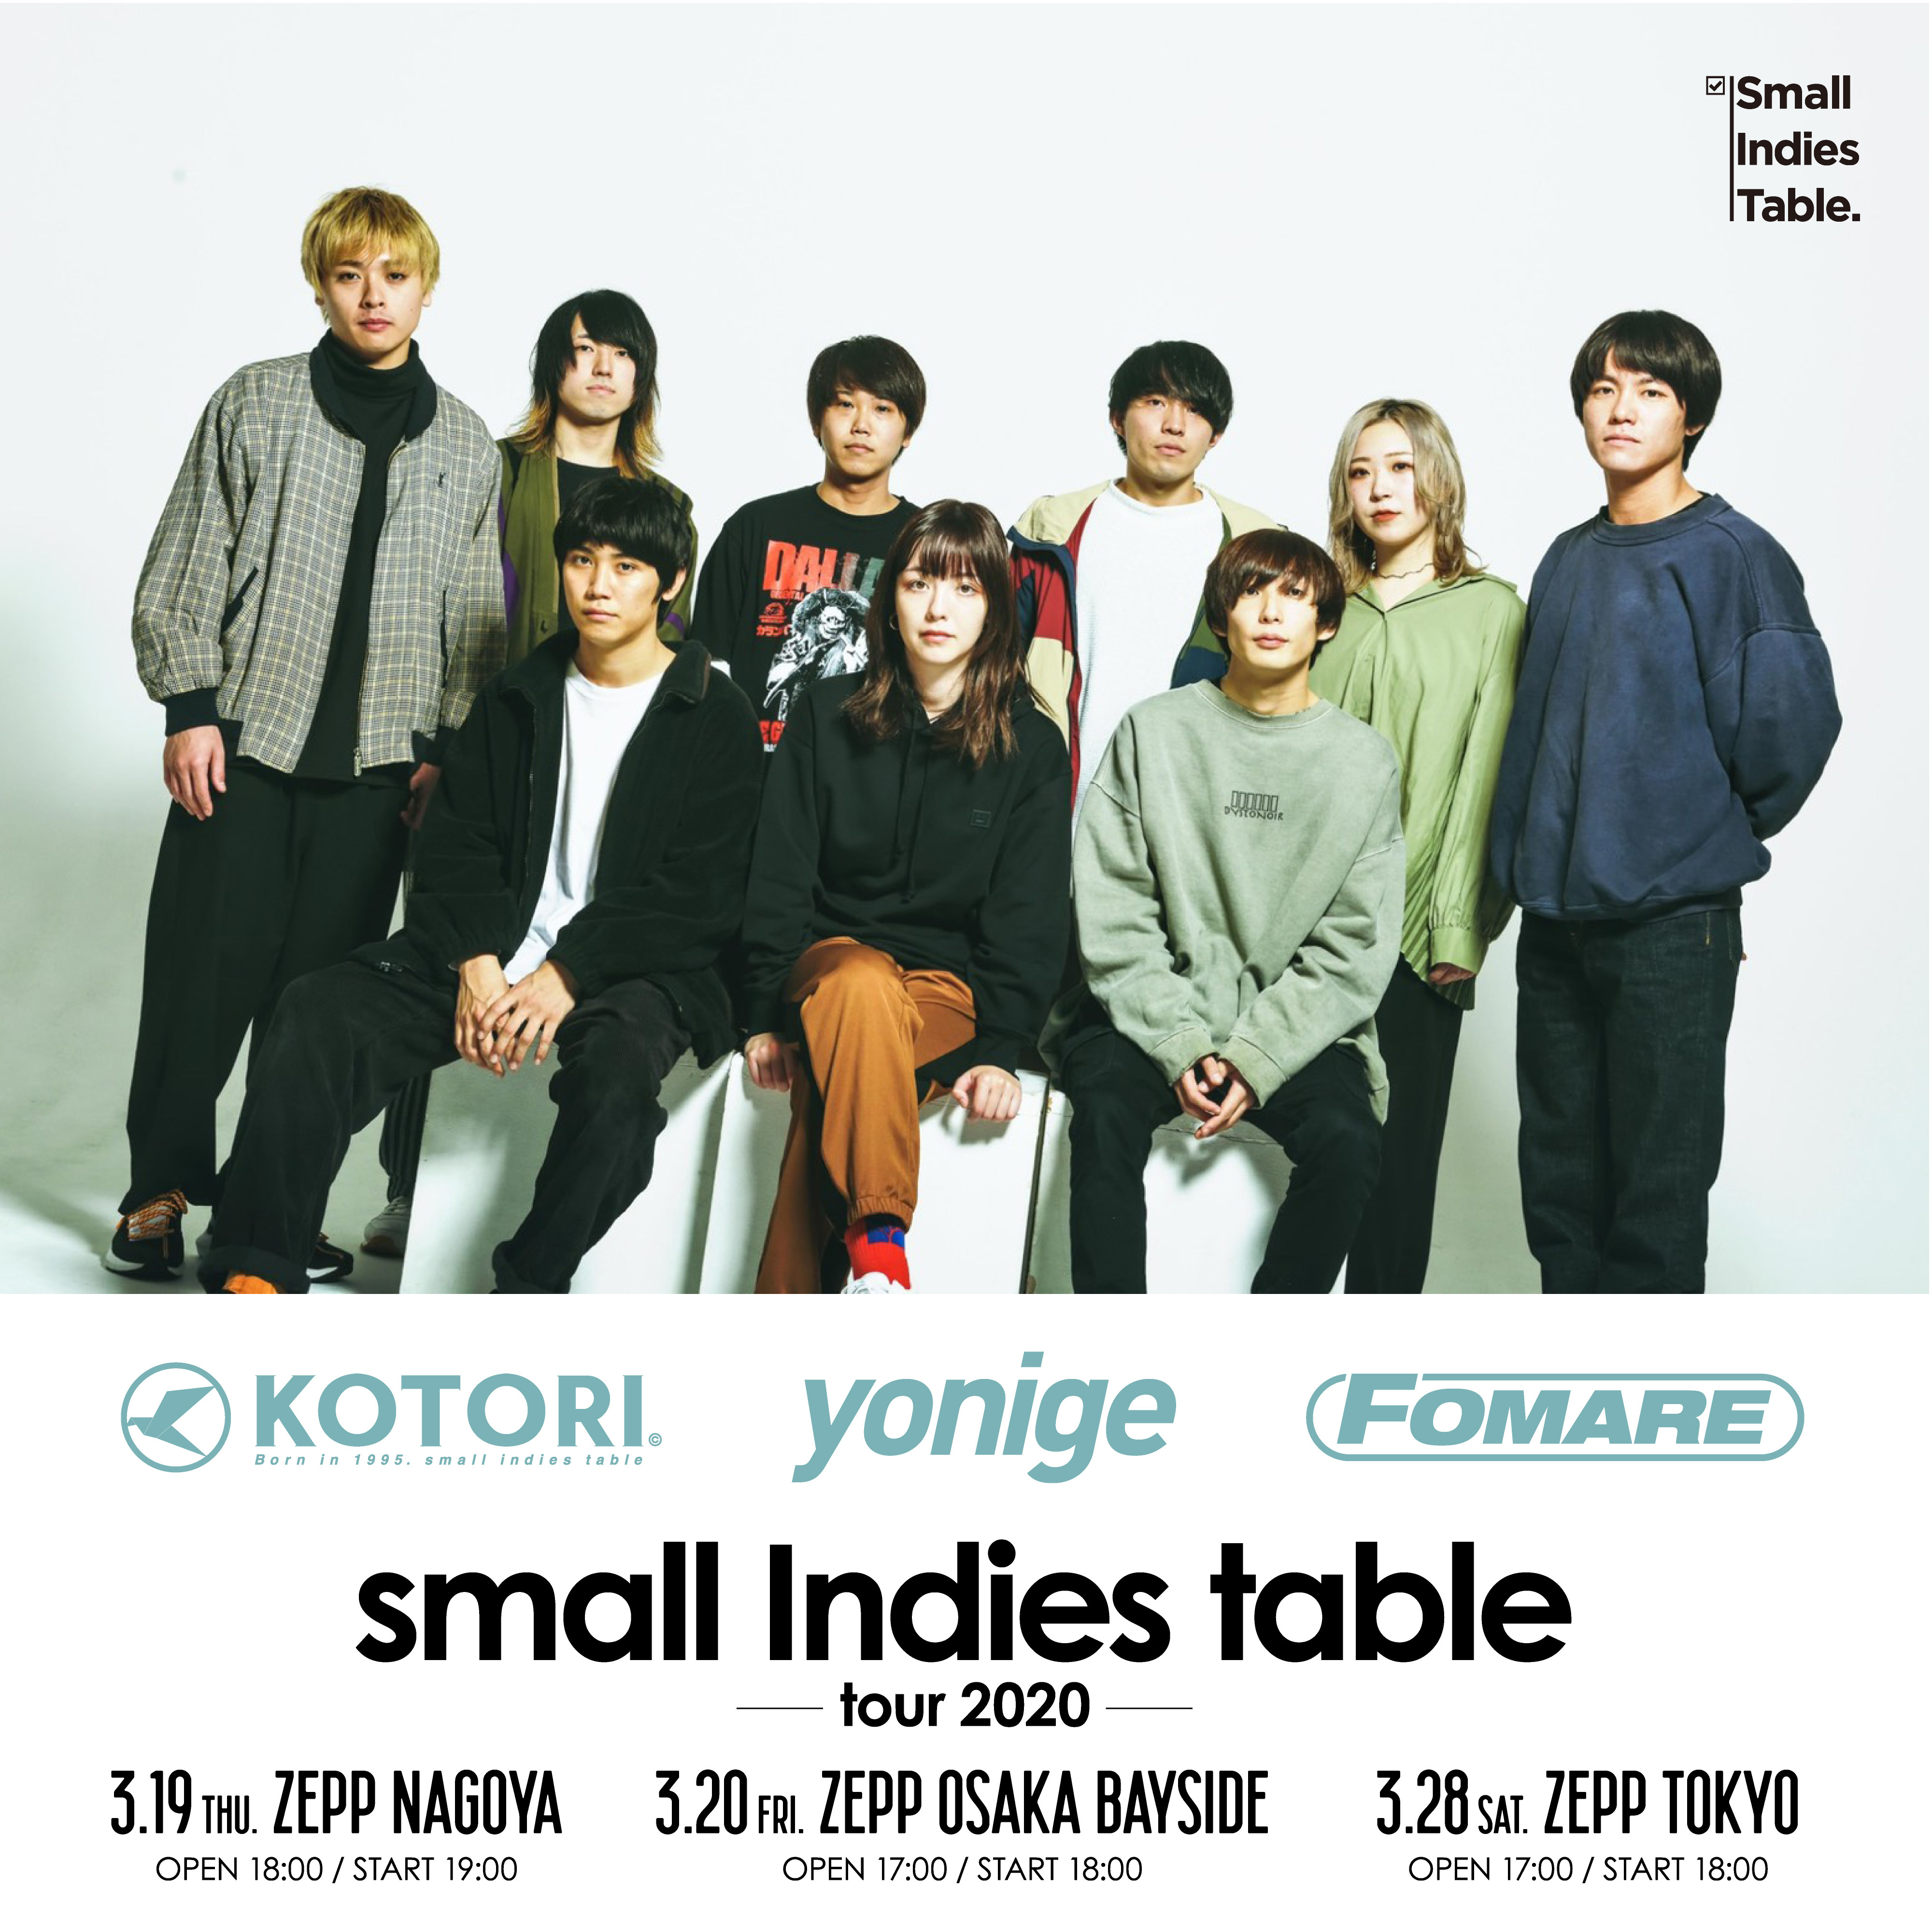 small indies table tour 2020